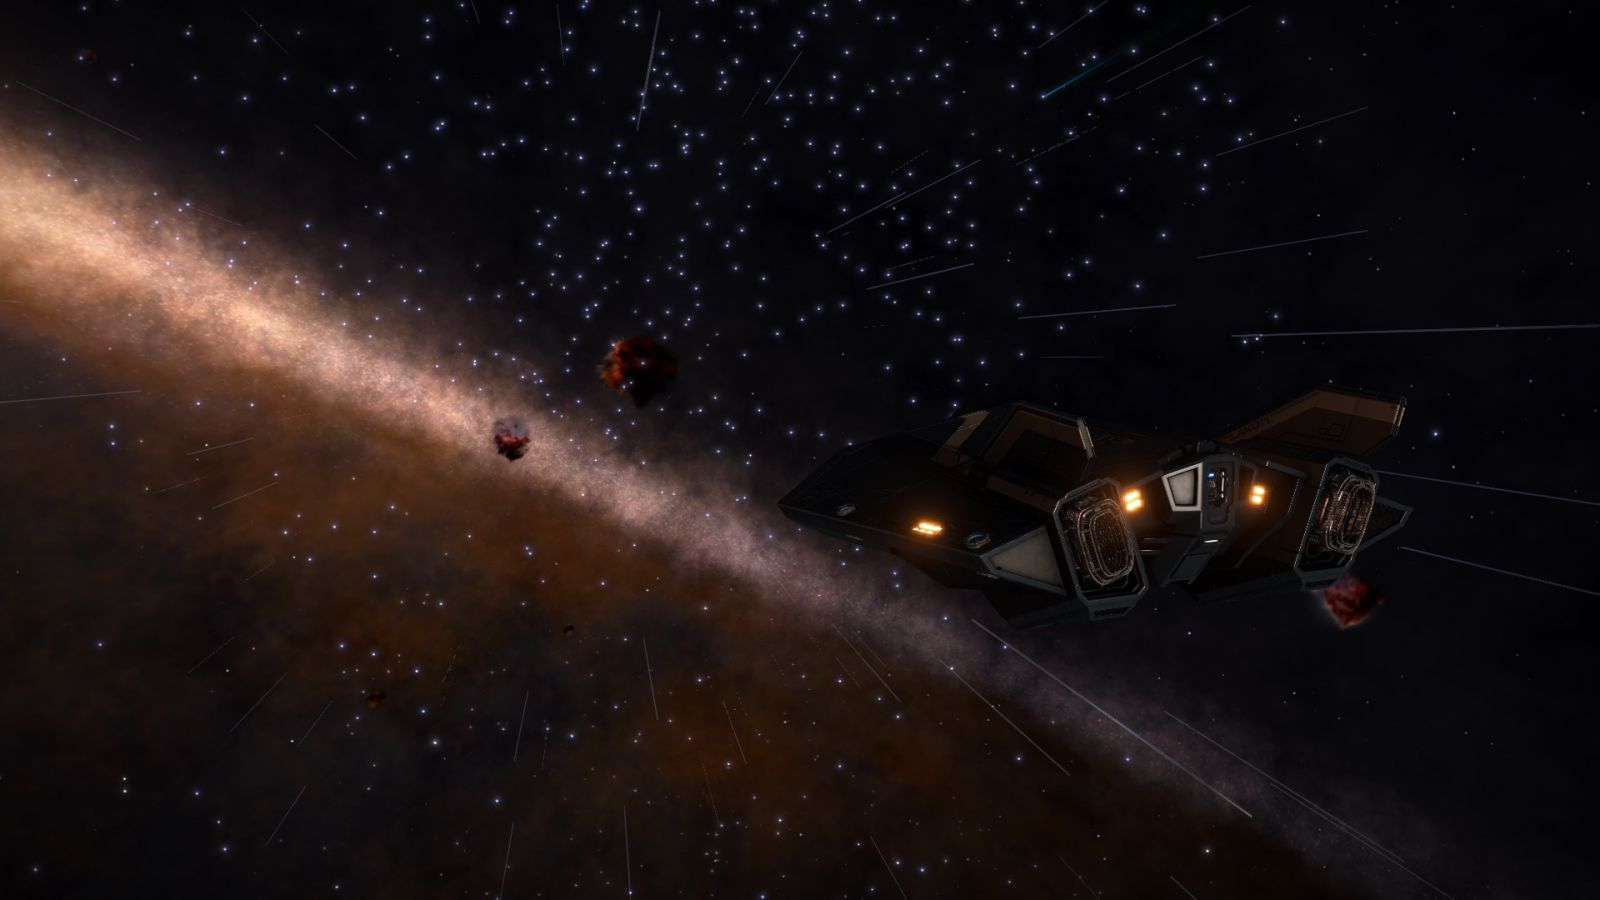 On the way to Colonia.